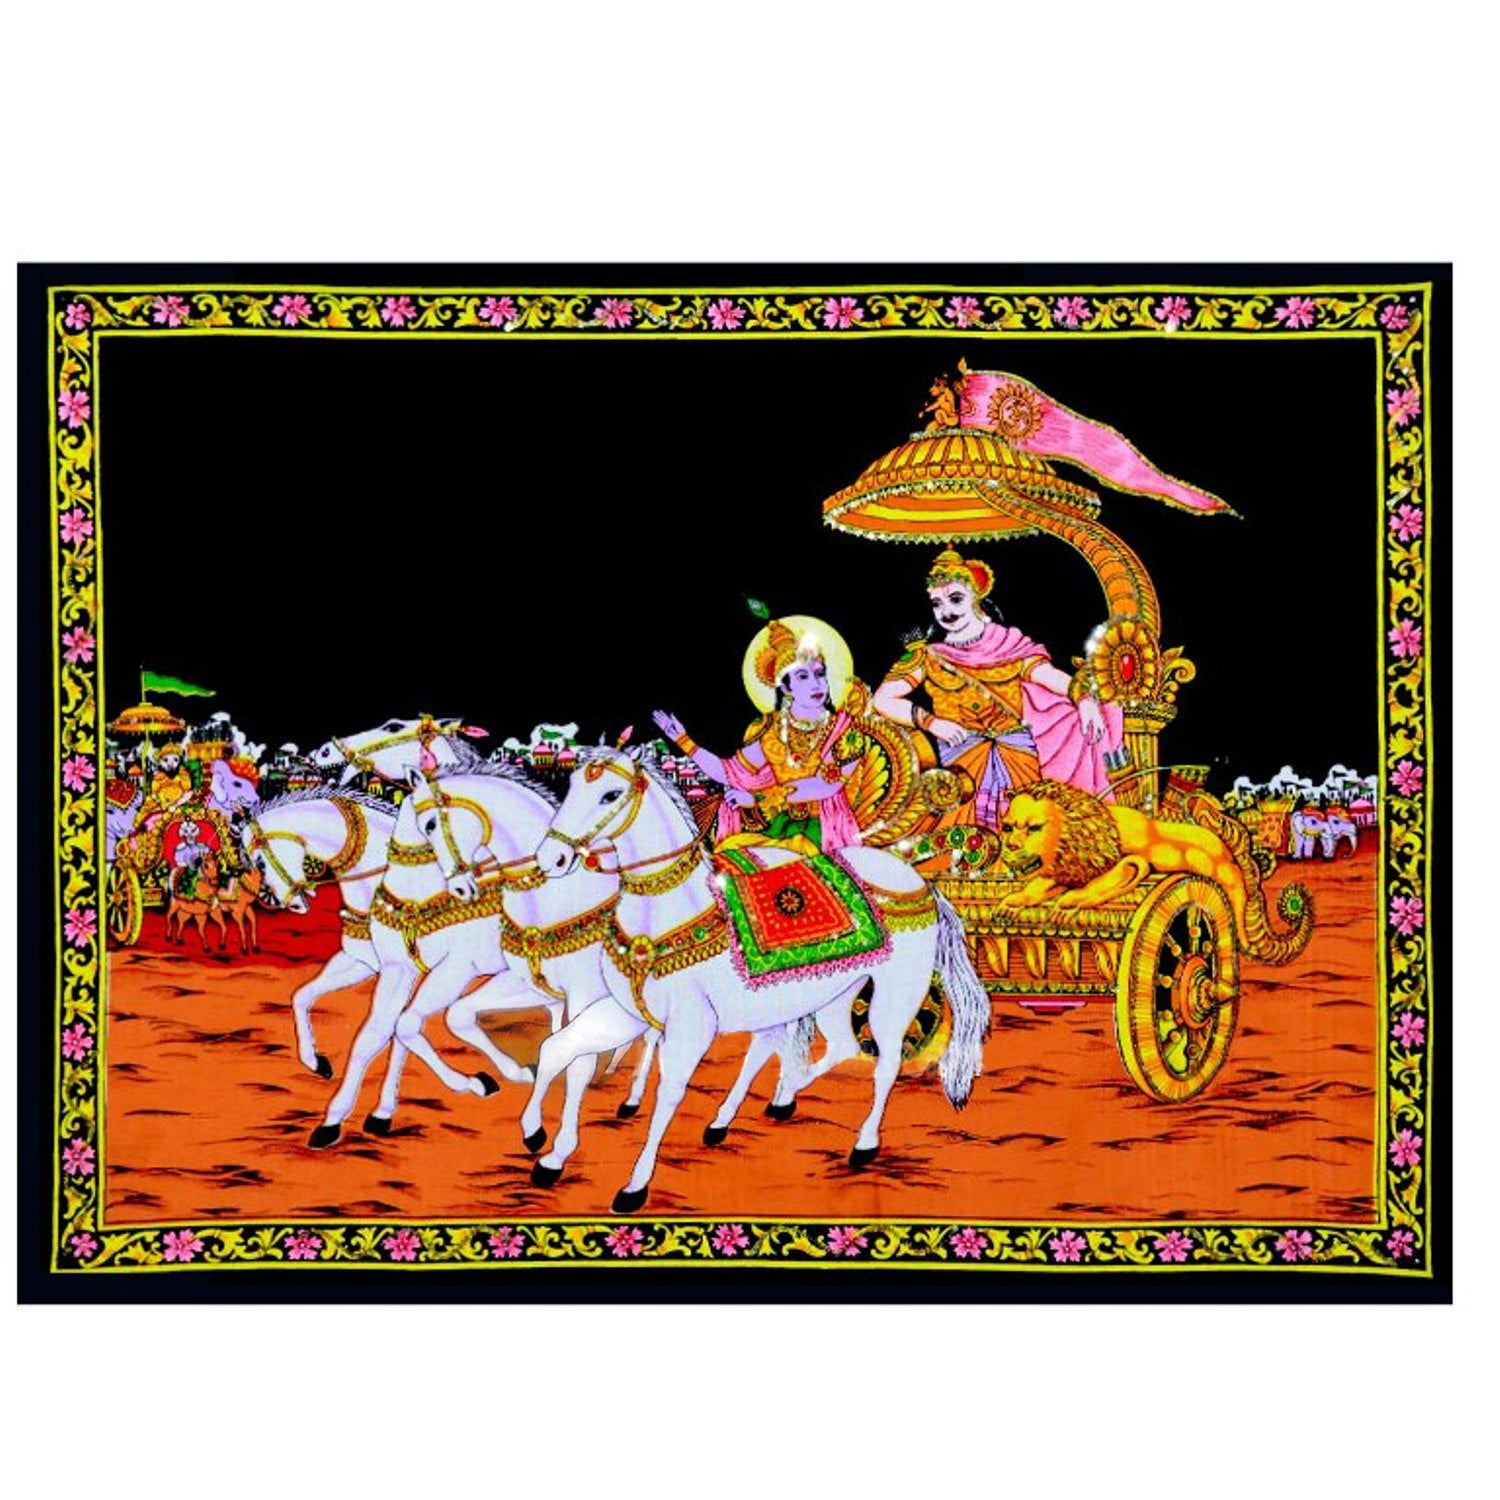 Krishna & Arjuna Mahabharata Gita Upadesa Cotton Cloth with Sequin Work Tapestry